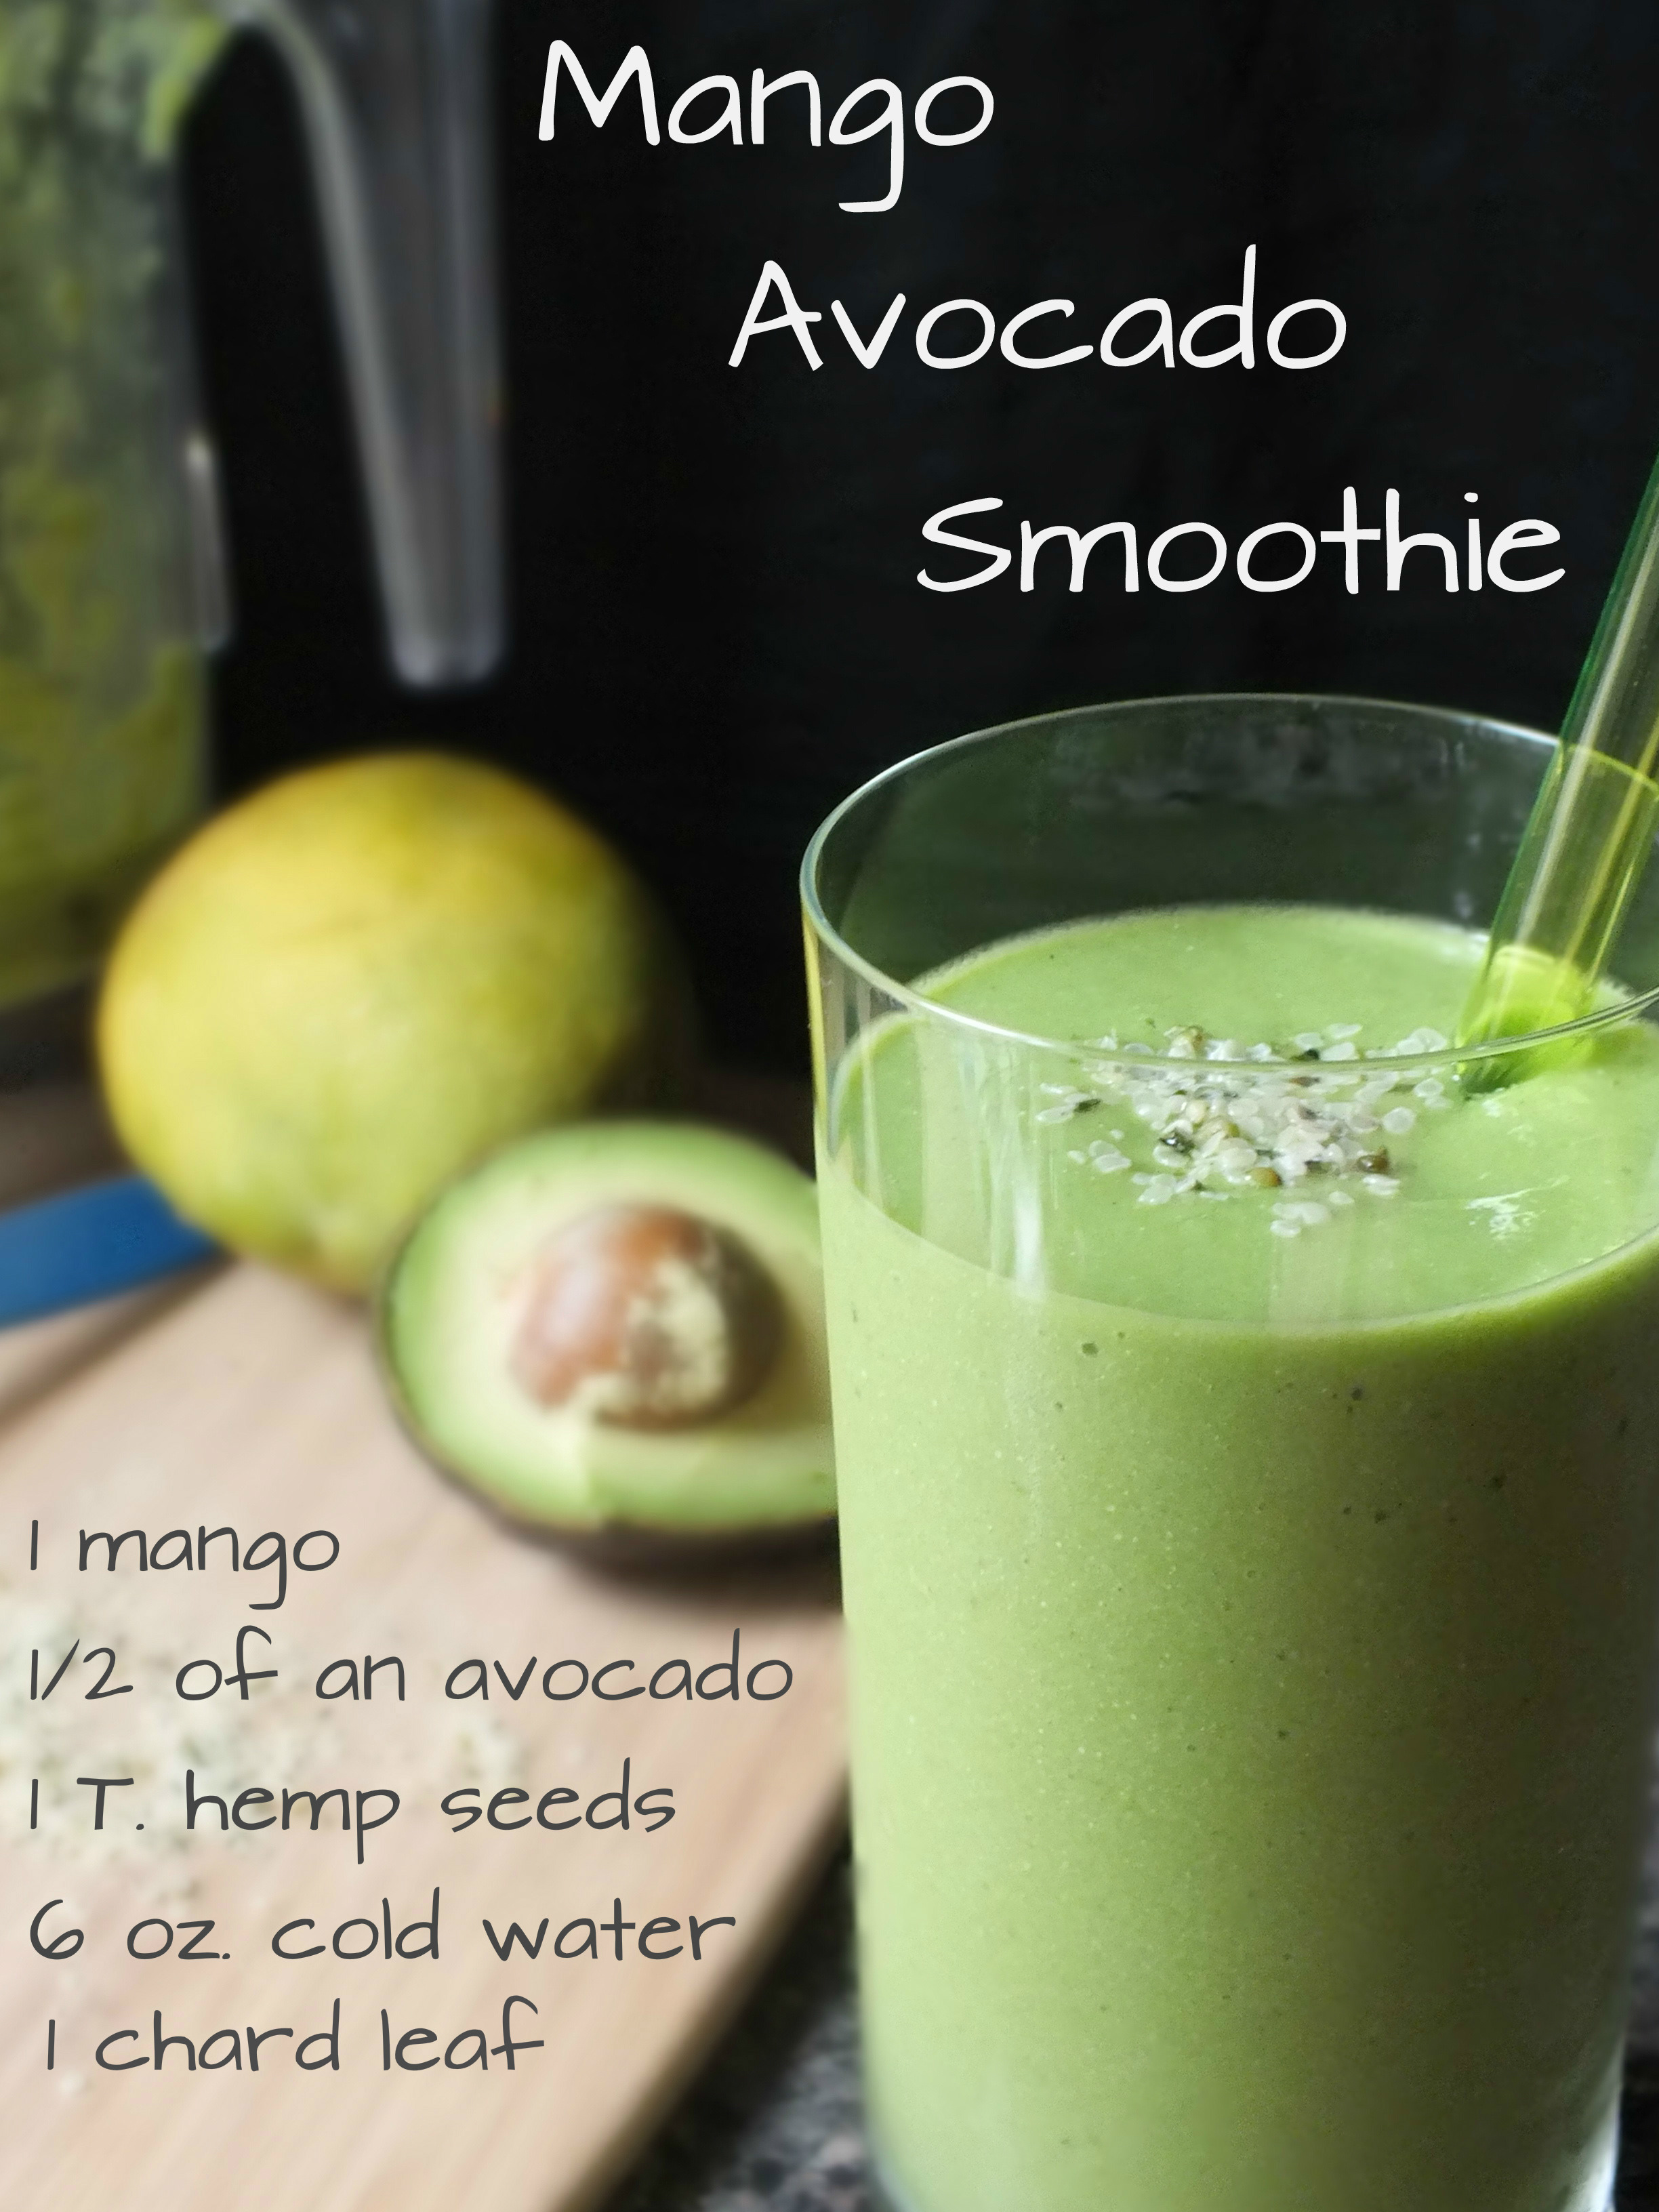 Comment on Smoothie Saturday: Mango Avocado Smoothie by 19 Healthy Paleo Avocado Smoothie Recipes [Includes AIP and Primal]